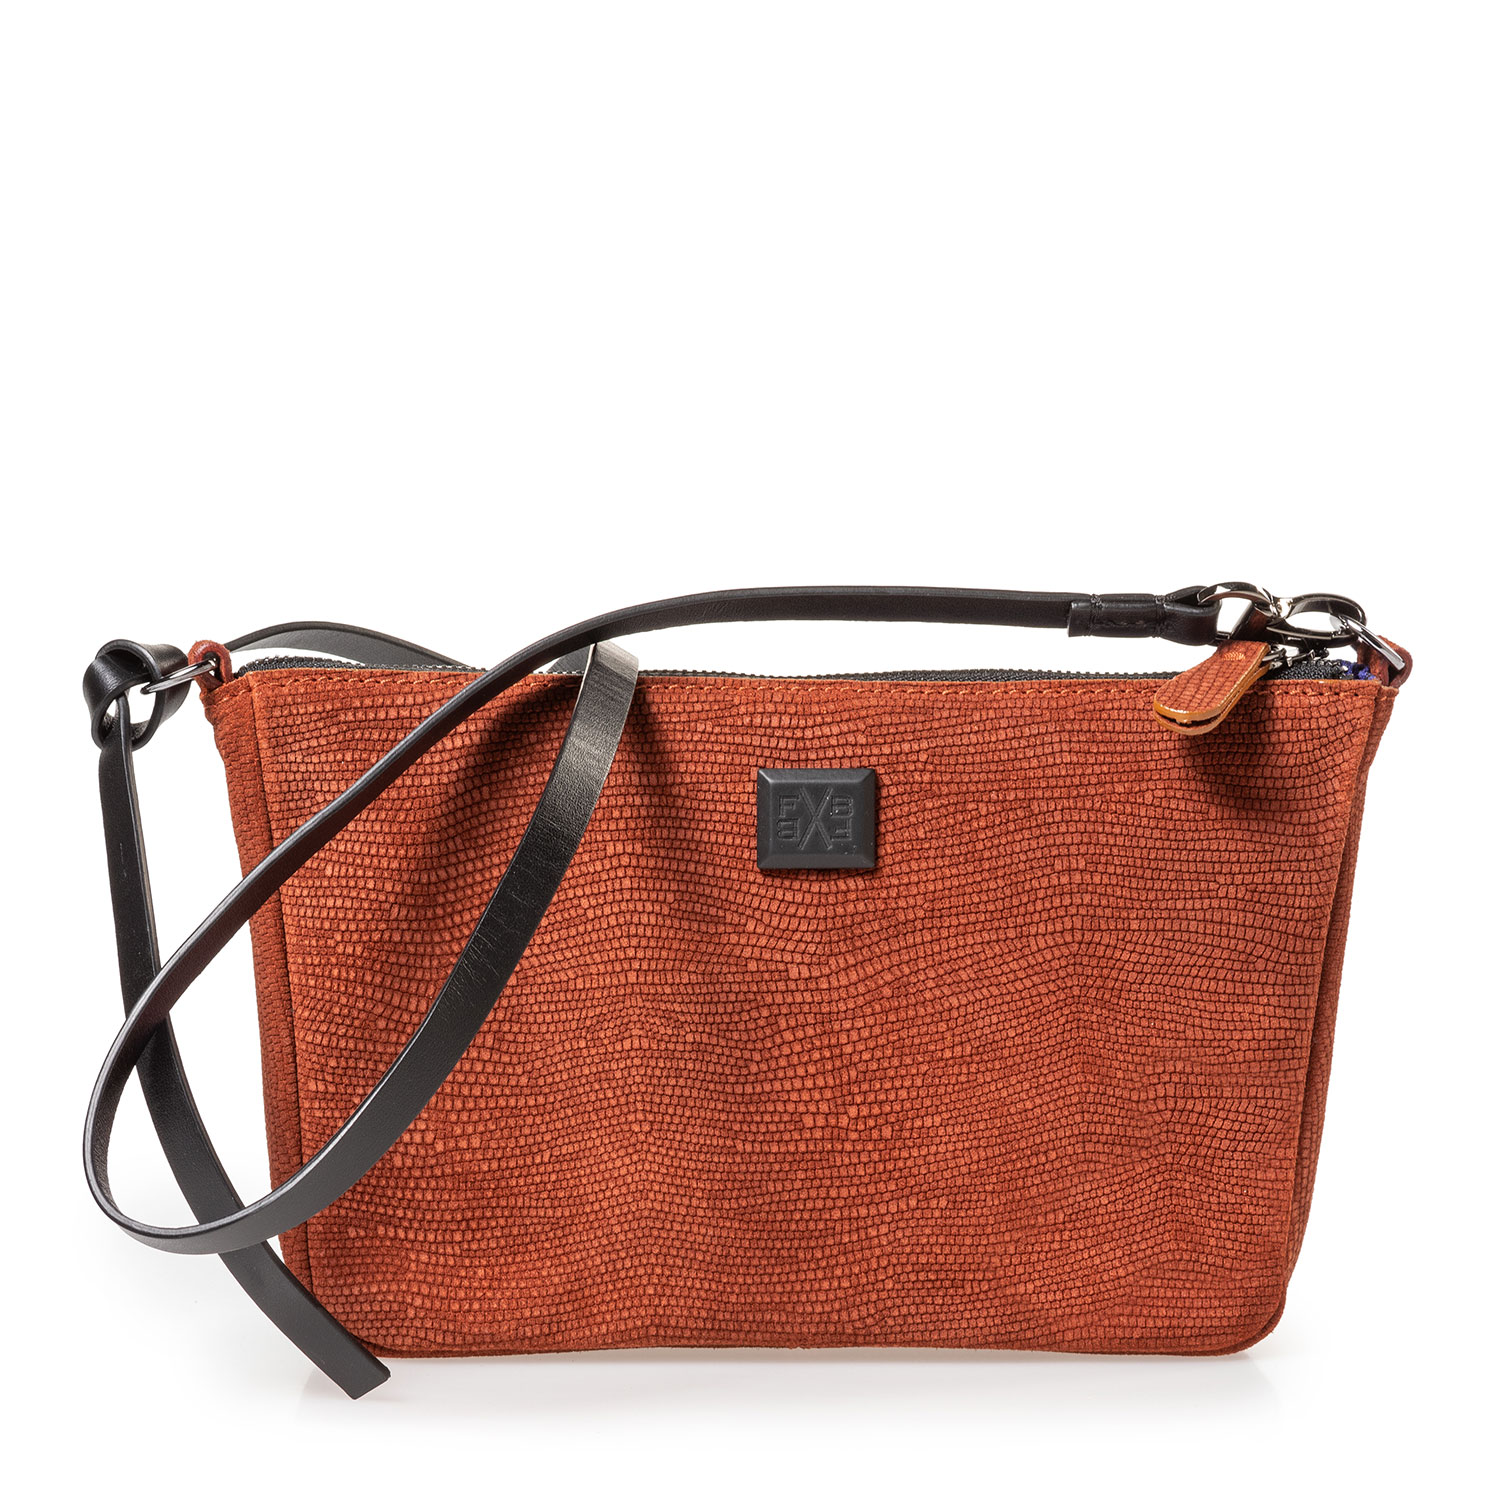 89019/23 - Bag suede leather brown